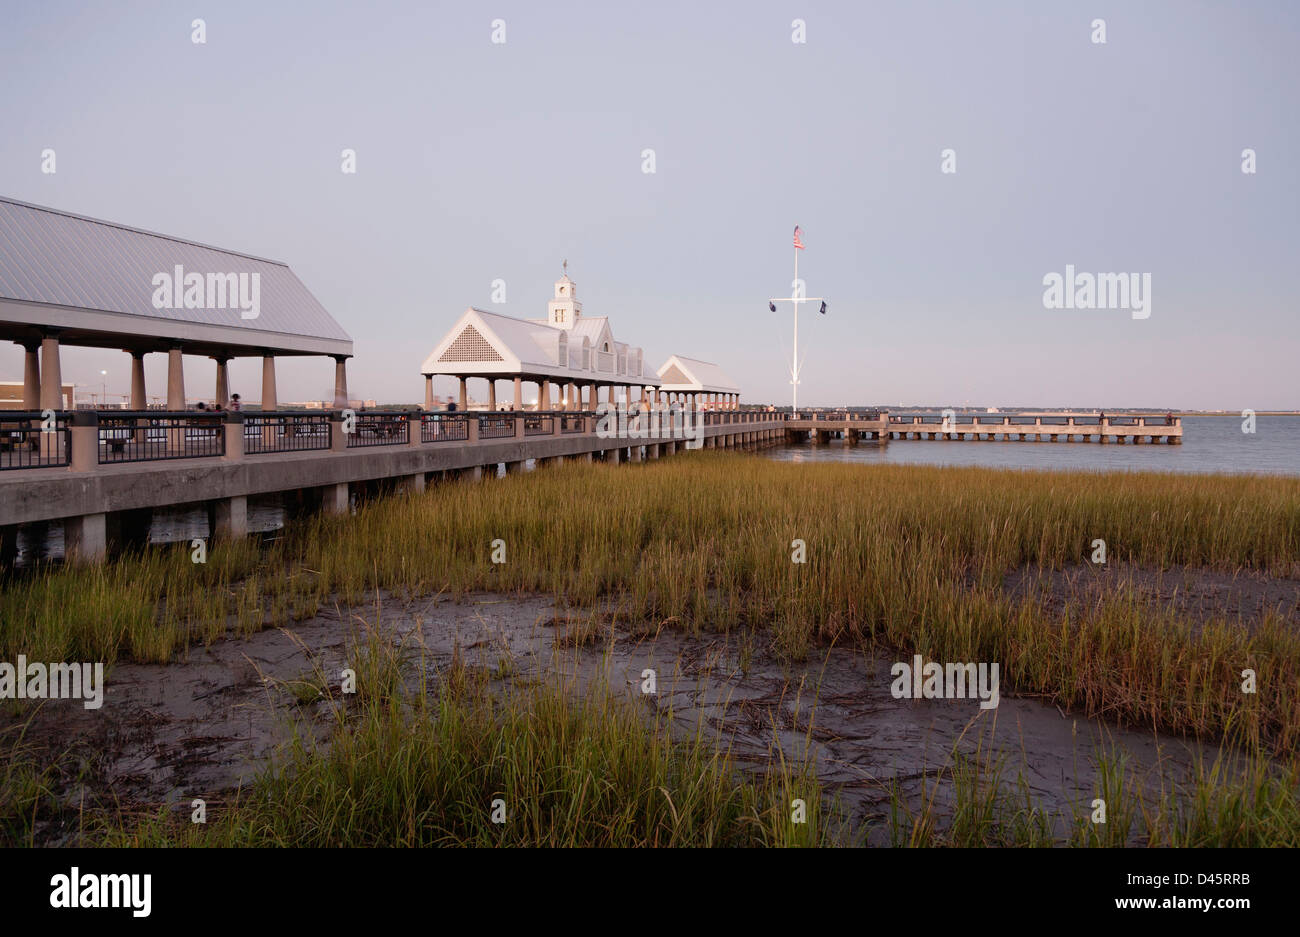 Vendue Wharf pier and Waterfront Park, Charleston, South Carolina, USA - Stock Image